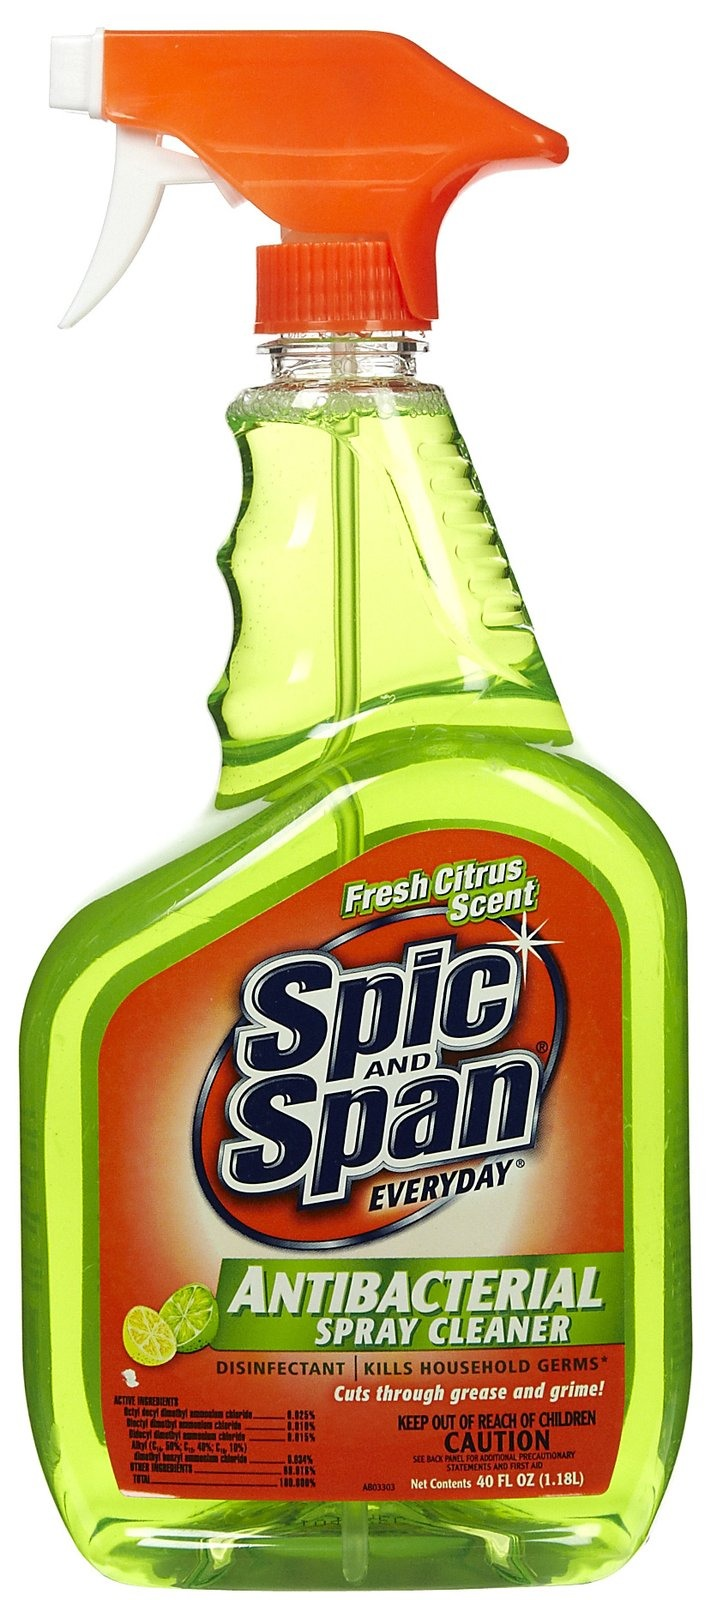 Spic and span antibacterial kitchen cleaner